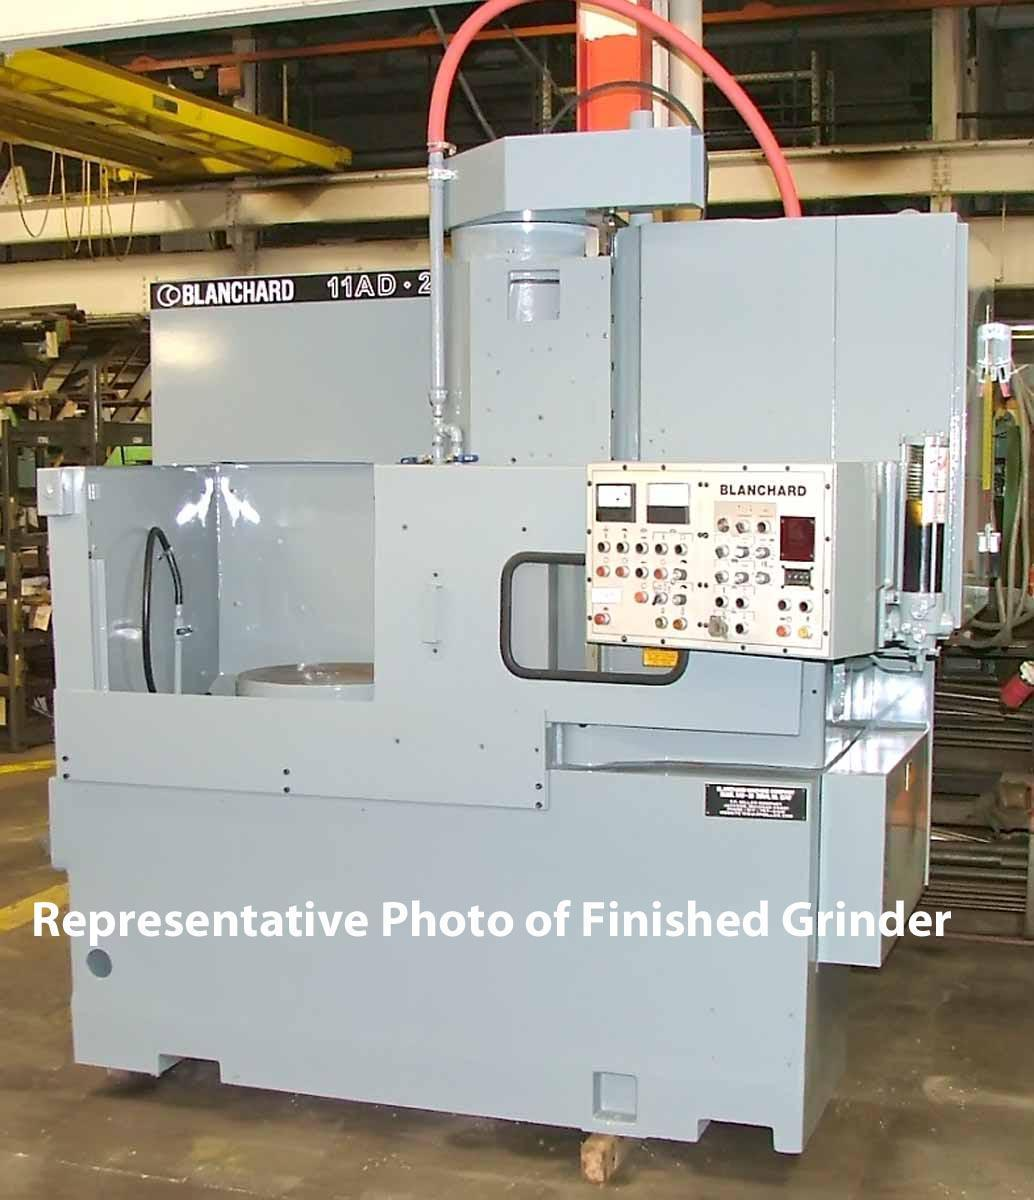 "Blanchard #11AD-20, 20"" Vertical Rotary Surface Grinder, Remanufactured W/ Warranty"